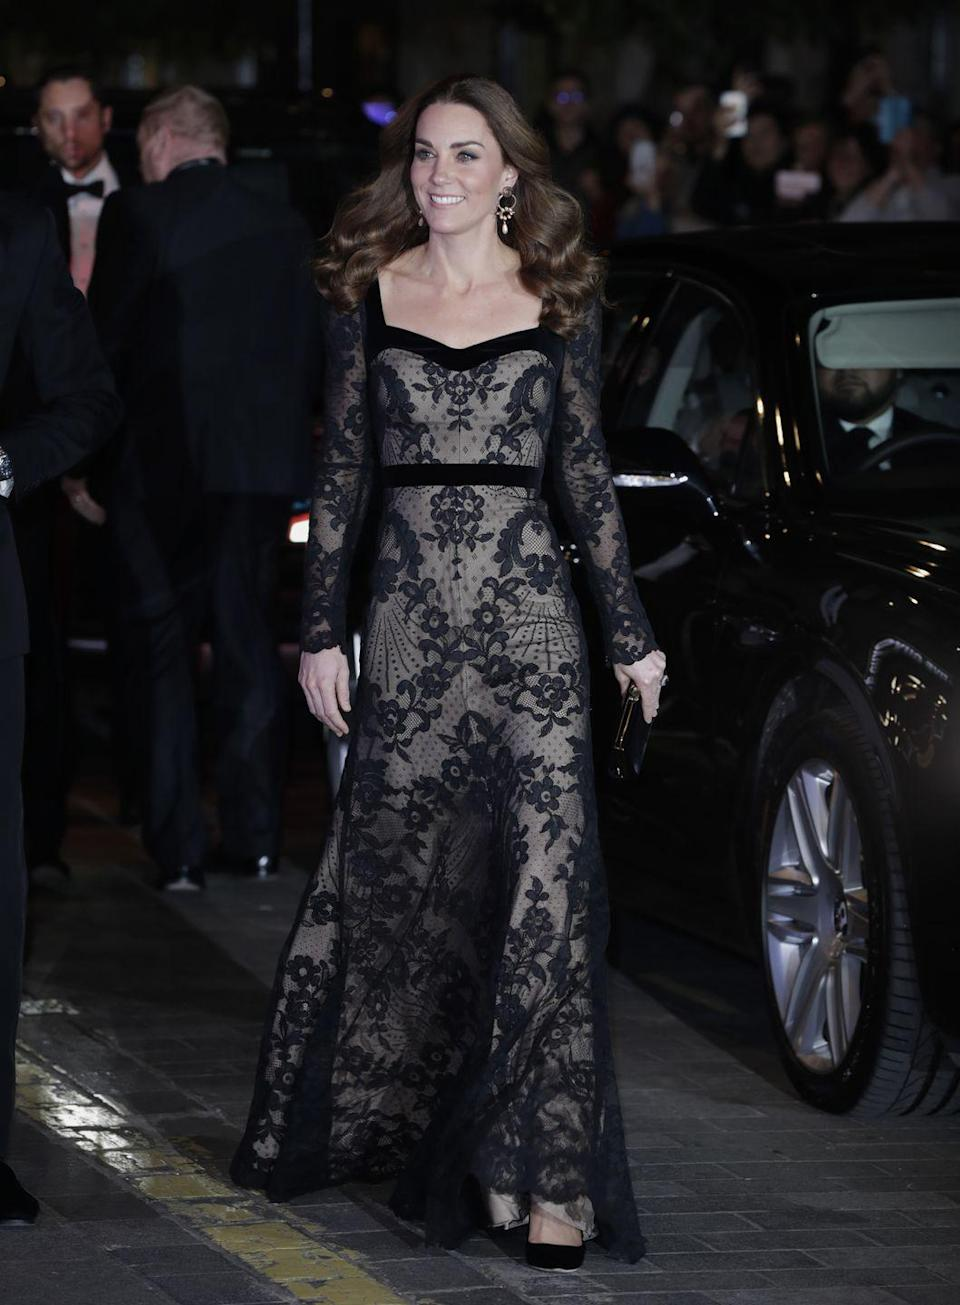 """<p>While <a href=""""https://www.townandcountrymag.com/society/tradition/a29811326/kate-middleton-alexander-mcqueen-royal-variety-performance-photos-2019/"""" rel=""""nofollow noopener"""" target=""""_blank"""" data-ylk=""""slk:attending the annual Royal Variety Performance"""" class=""""link rapid-noclick-resp"""">attending the annual Royal Variety Performance</a>, Kate wore a semi-sheer black lace gown from the brand. She paired the dress with hoop earrings from Erdem.</p>"""